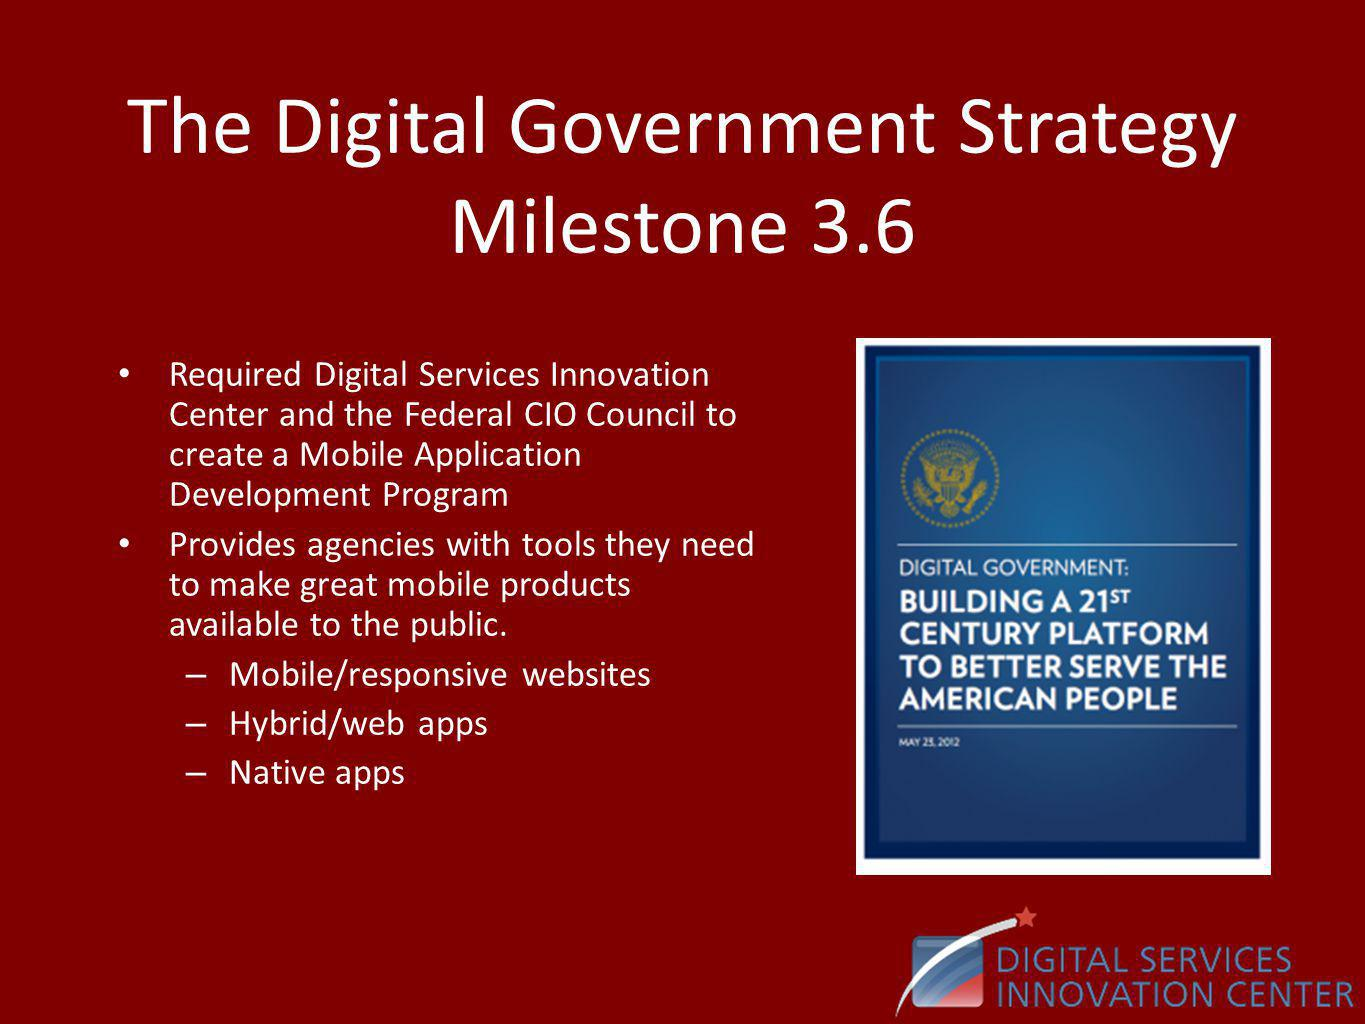 The Digital Government Strategy Milestone 3.6 Required Digital Services Innovation Center and the Federal CIO Council to create a Mobile Application Development Program Provides agencies with tools they need to make great mobile products available to the public.